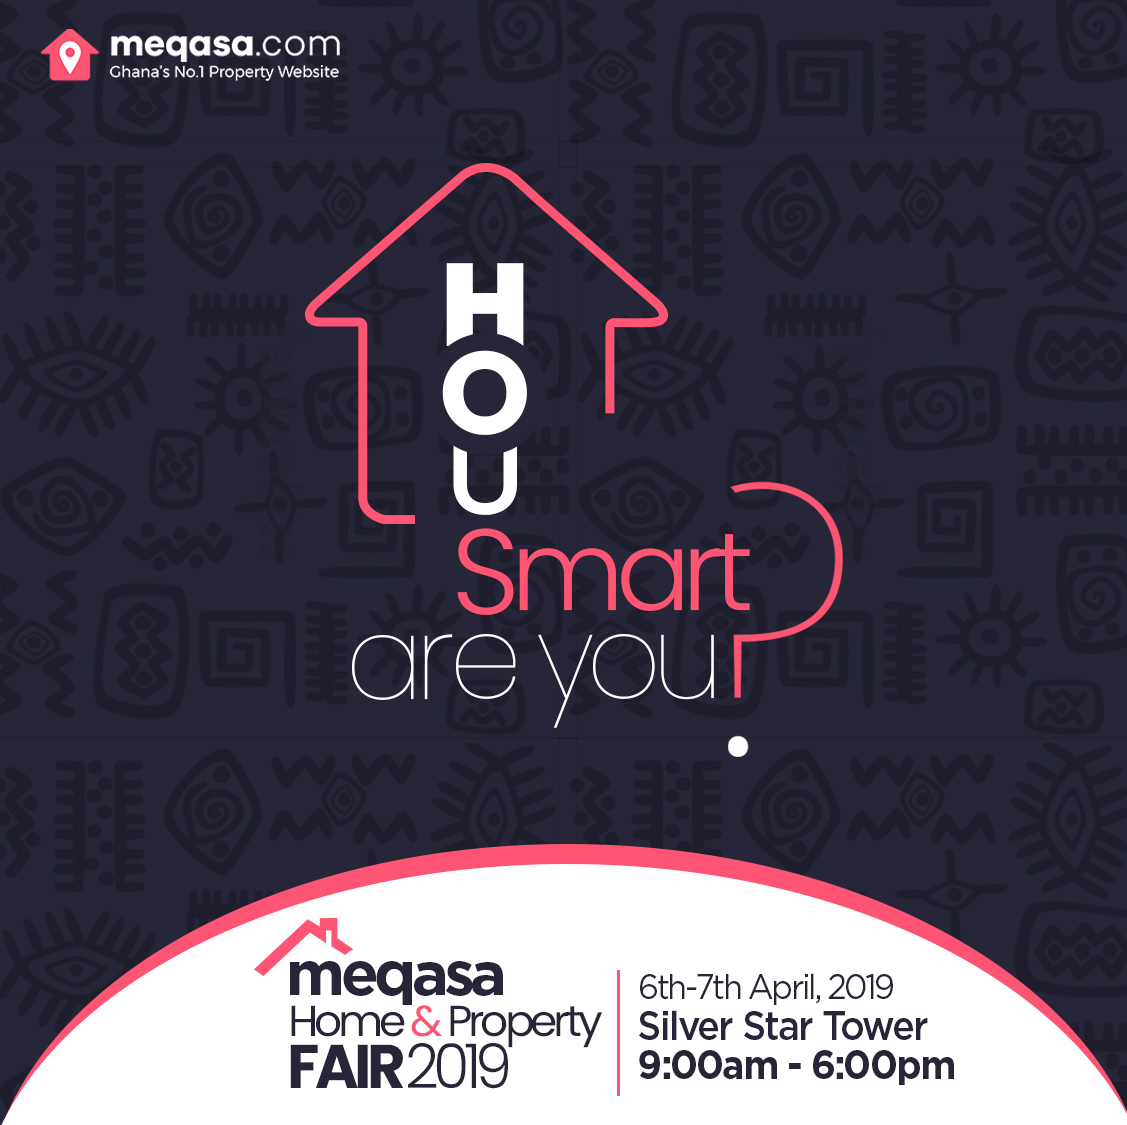 meqasa home and property fair 2019 house smart are you